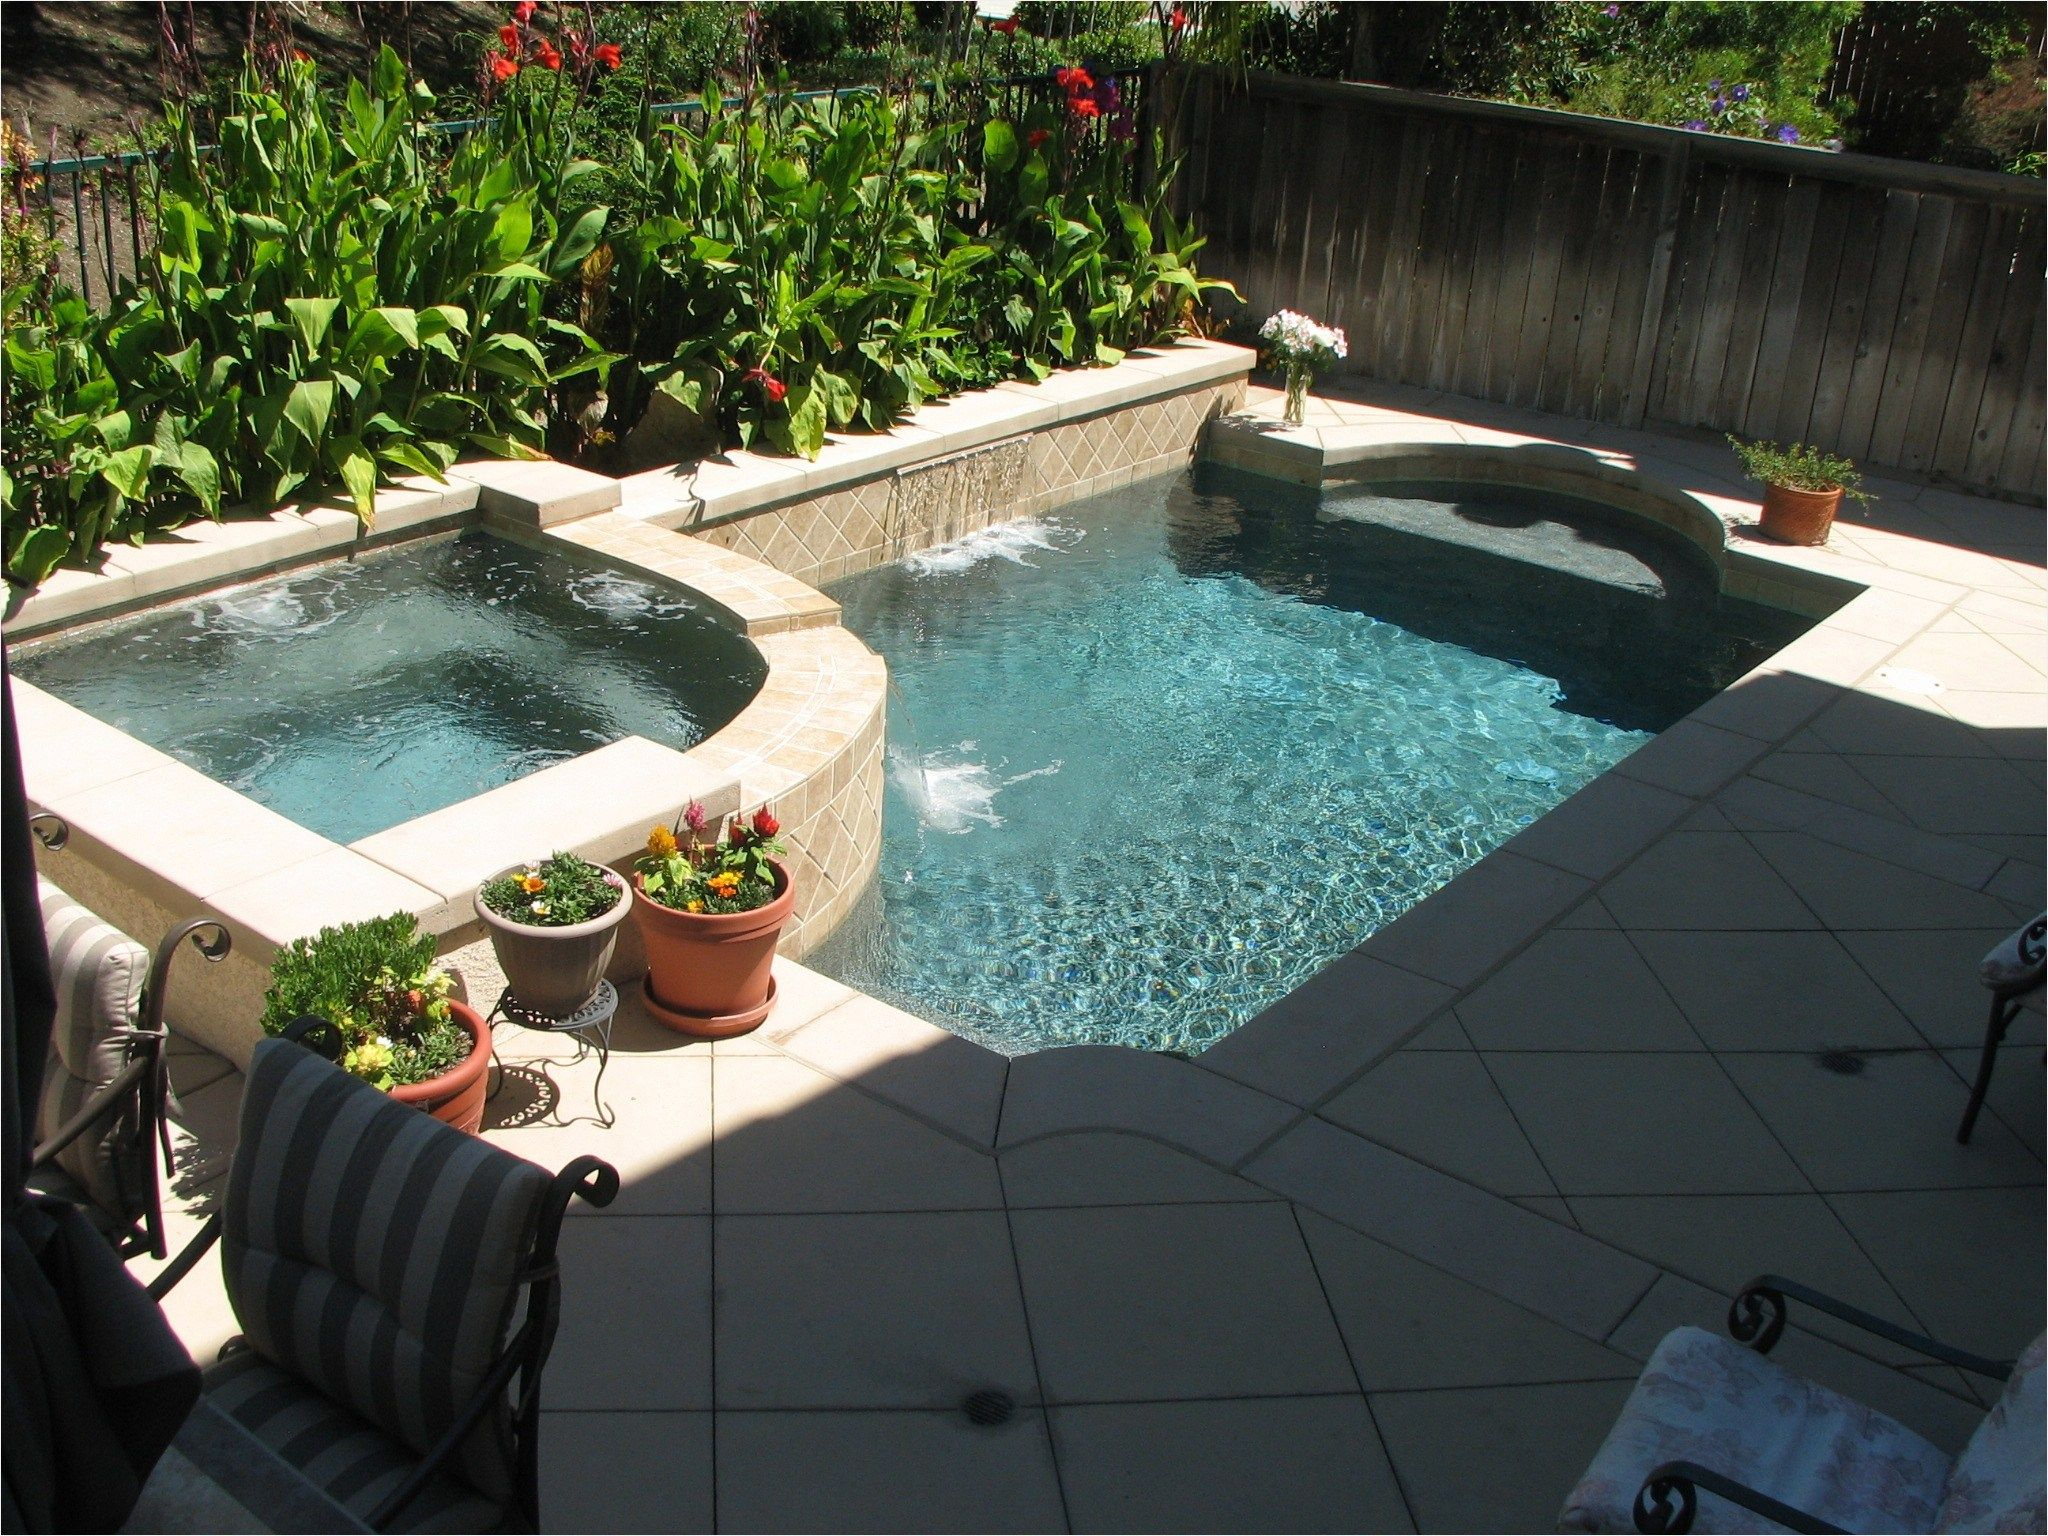 42 Amazing Ideas For Small Yards Pool That Will Amaze You Small